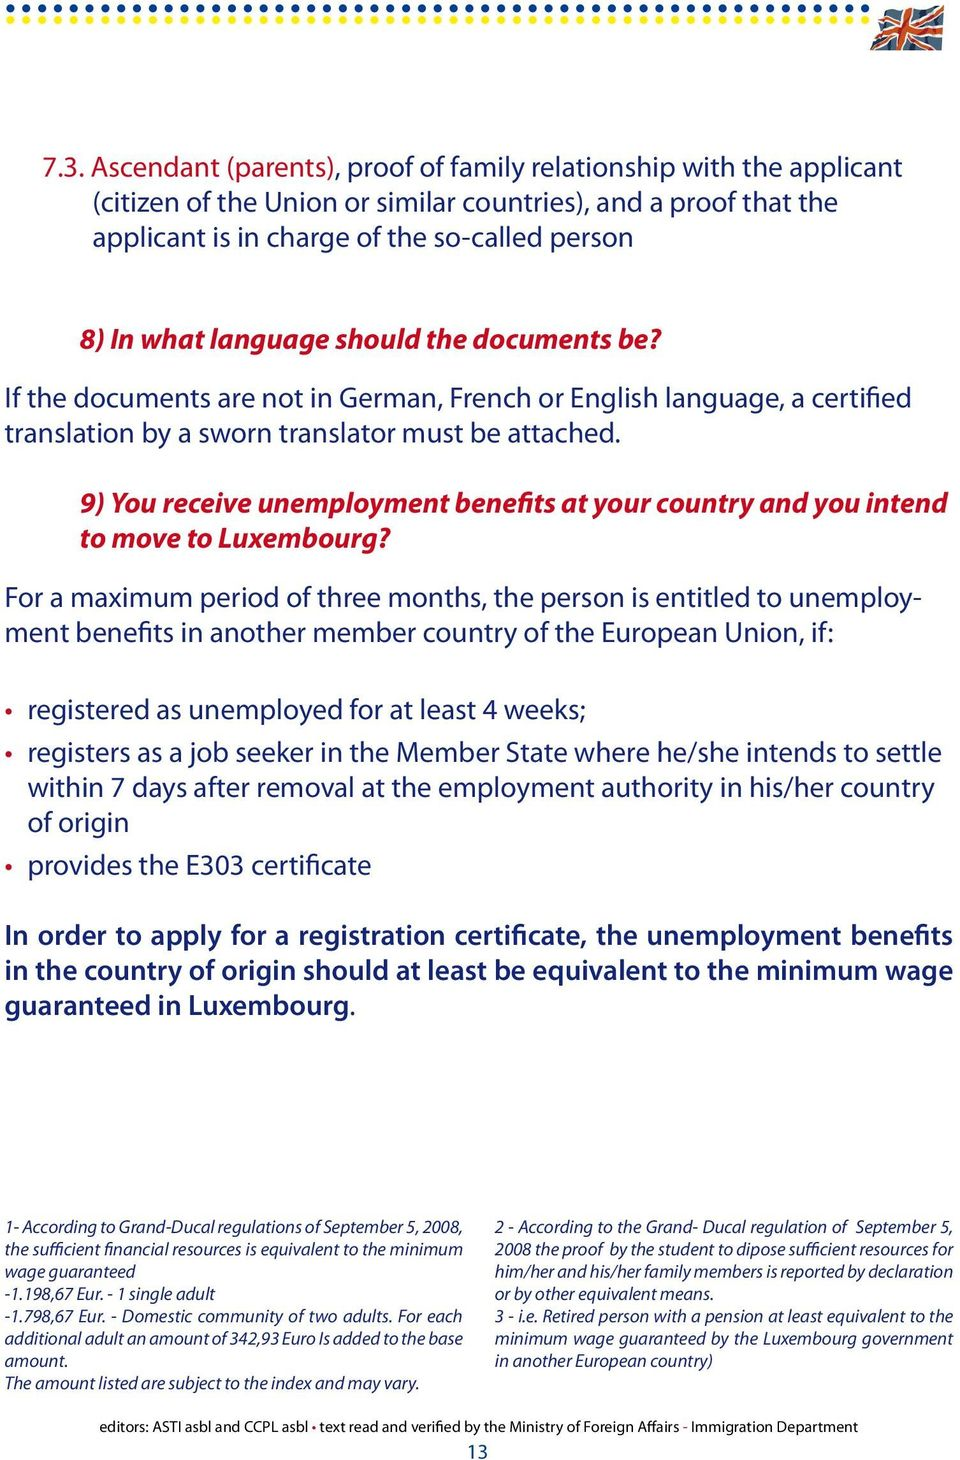 9) You receive unemployment benefits at your country and you intend to move to Luxembourg?